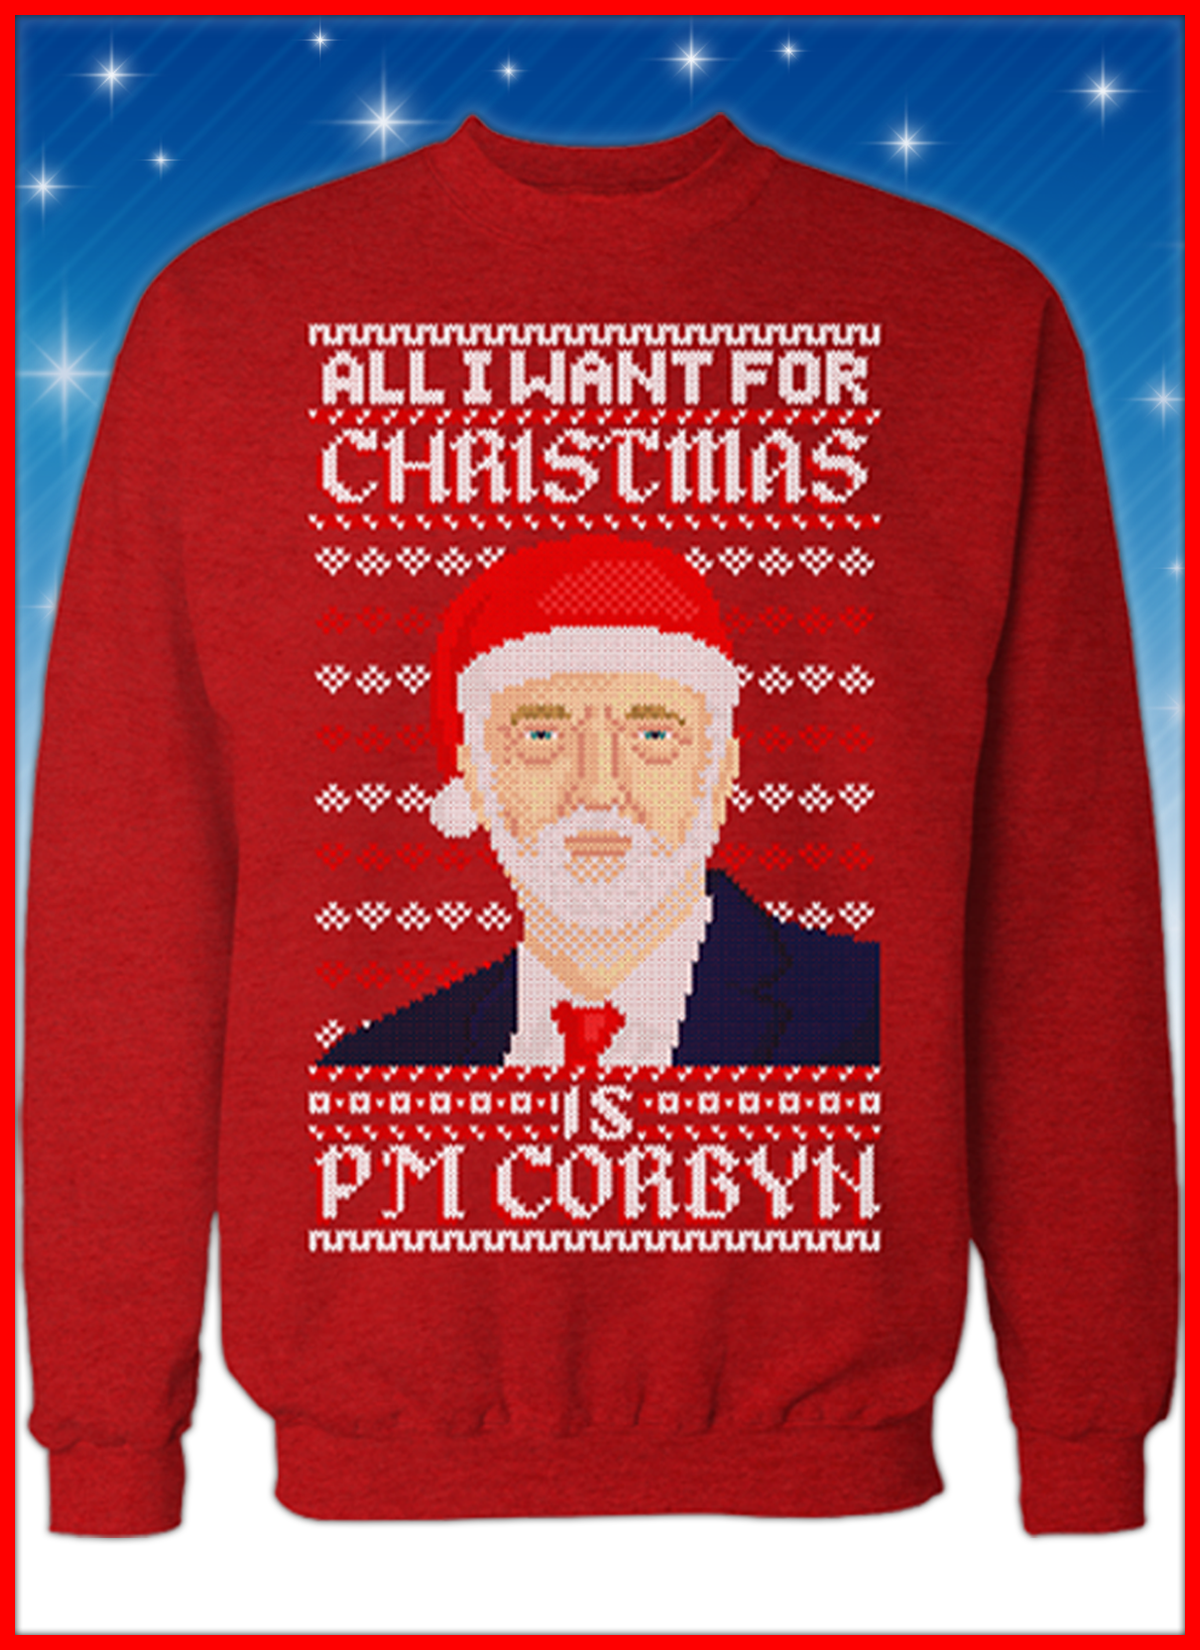 Jeremy Corbyn For The Many Not The Few Sweater Top Jumper Sweatshirt Labour